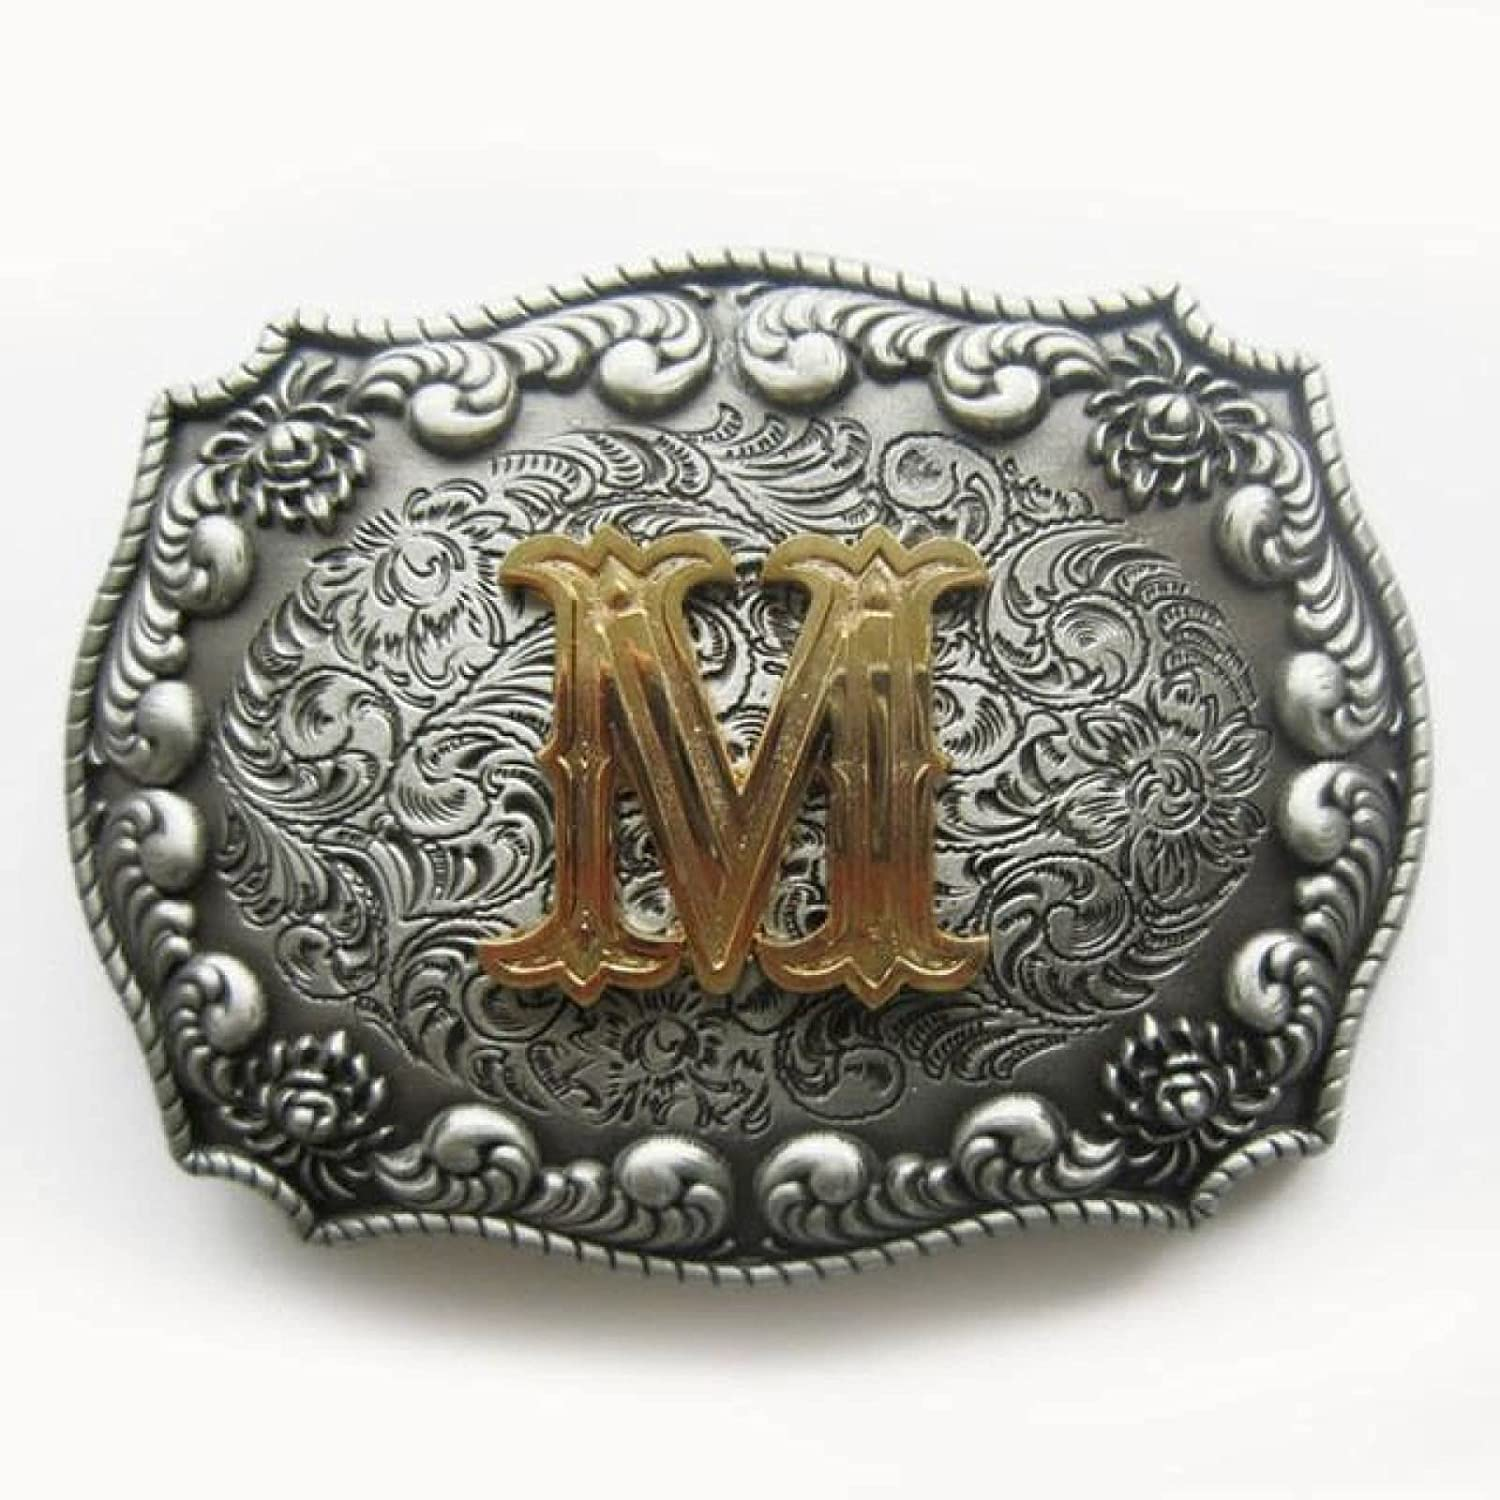 Western Cowboy Cowgirl Initial Womens Omaha Mall Belt Buckle Letter Max 59% OFF